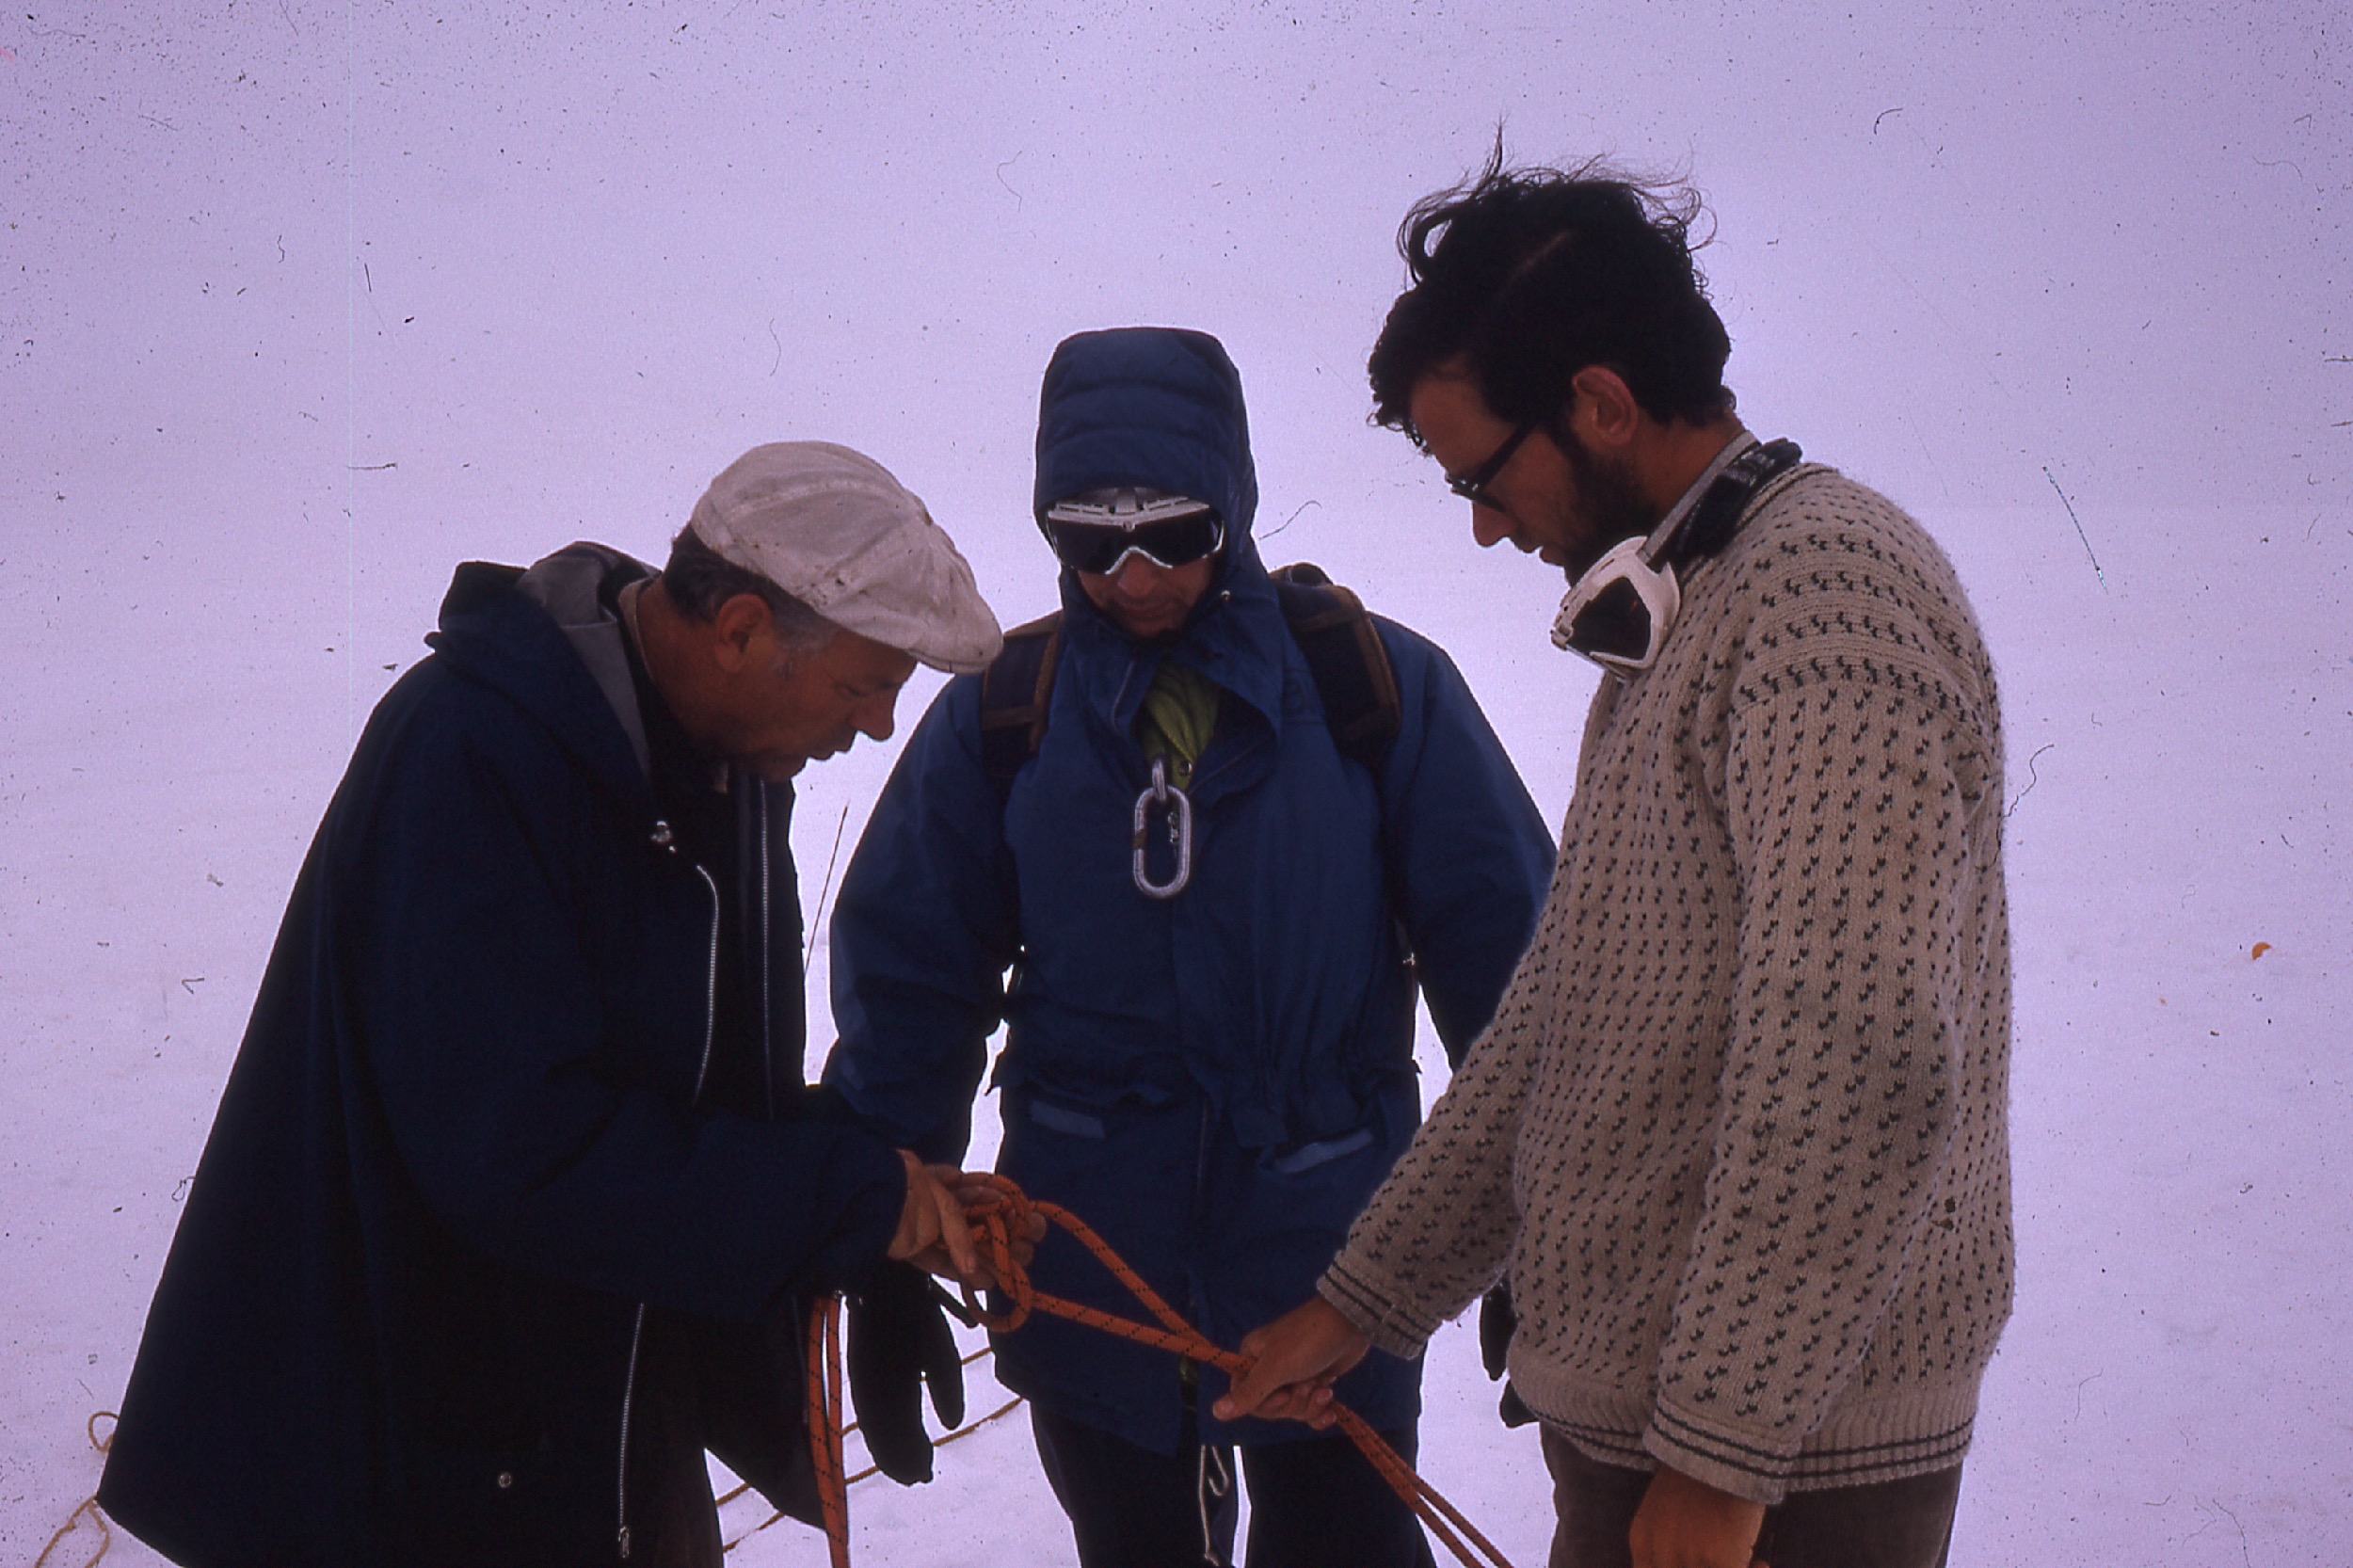 Dr. Maynard Miller instructs glacier travel techniques. JIRP 1970. Photo: M. Miller Collection